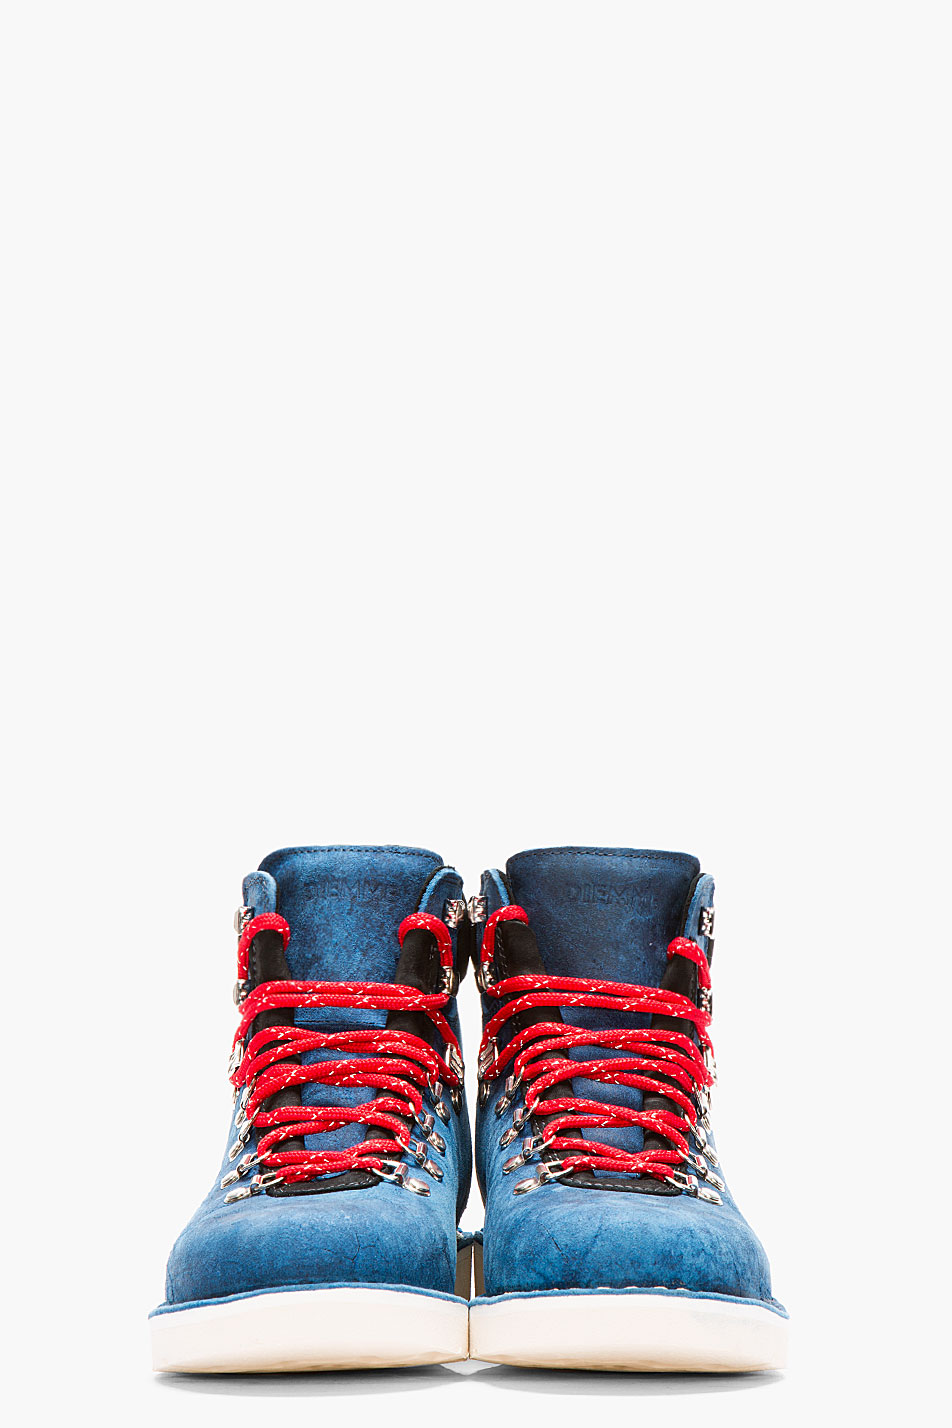 Distressed Navy Suede Hiking Boots Front View